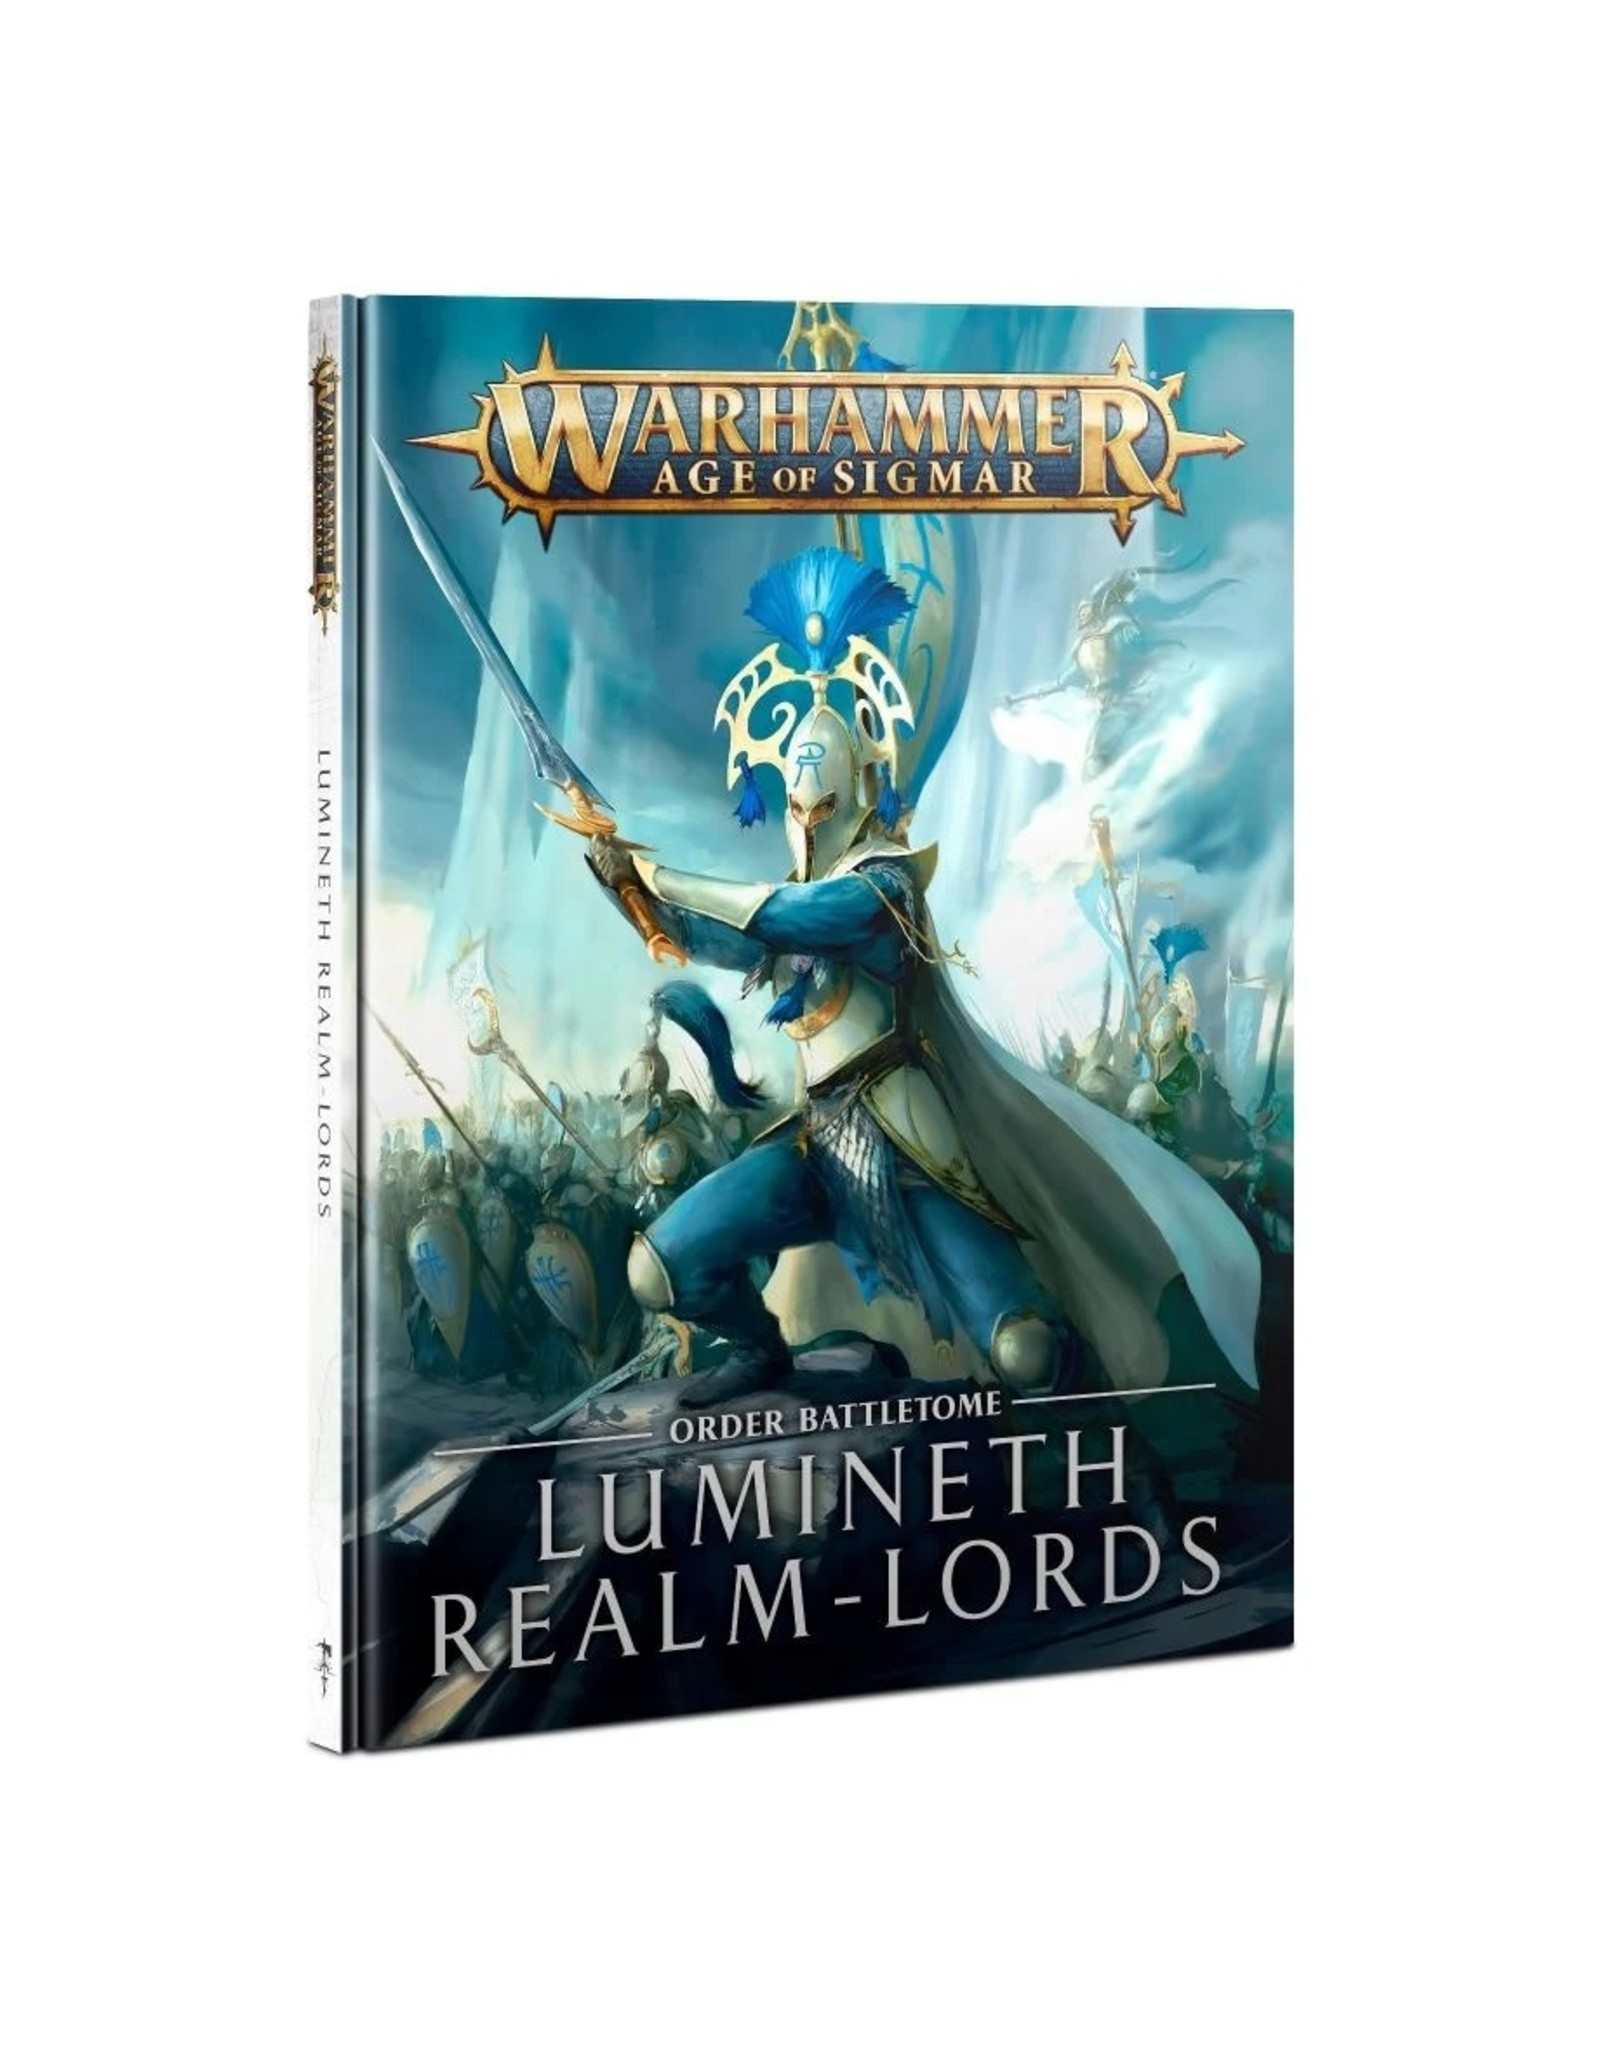 Warhammer AoS WHAoS Battletome - Lumineth Realm-Lords